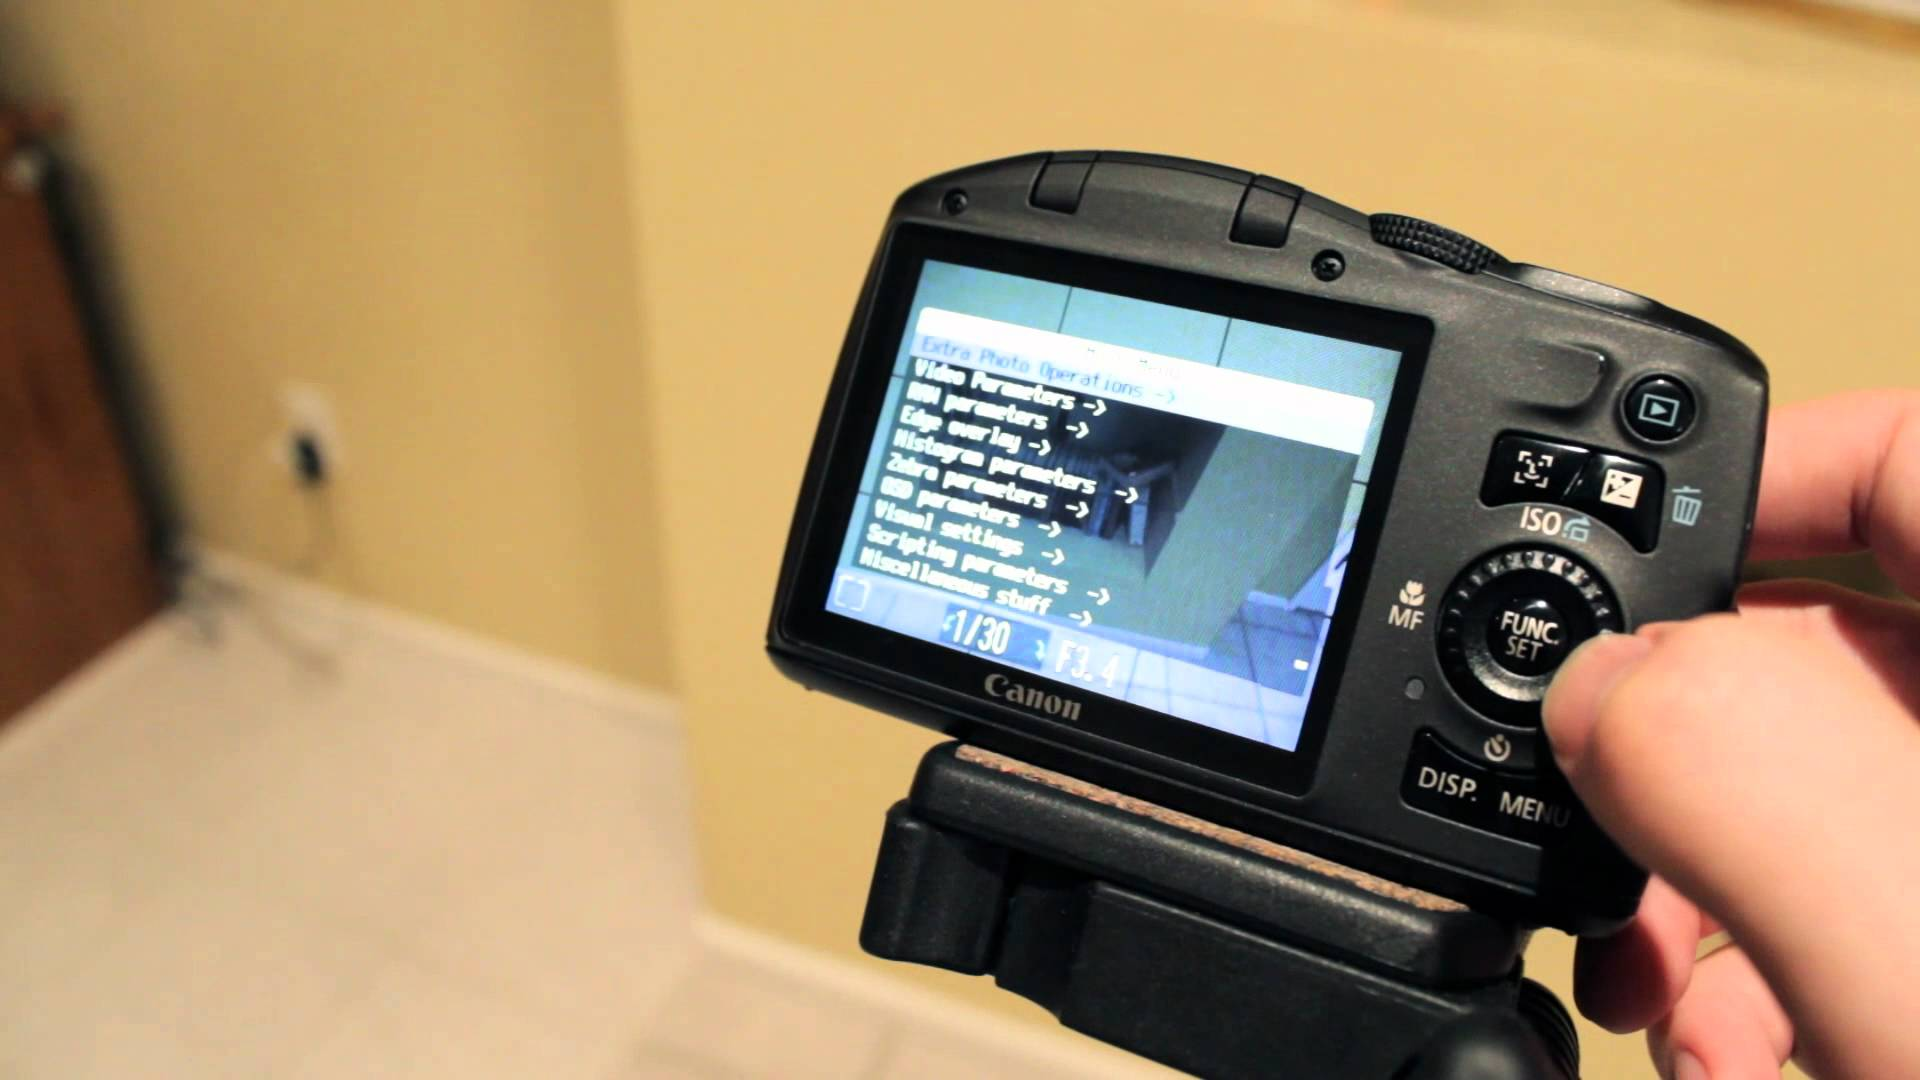 Canon CHDK Hack Tutorial: RAW, HDR, and Time Lapse